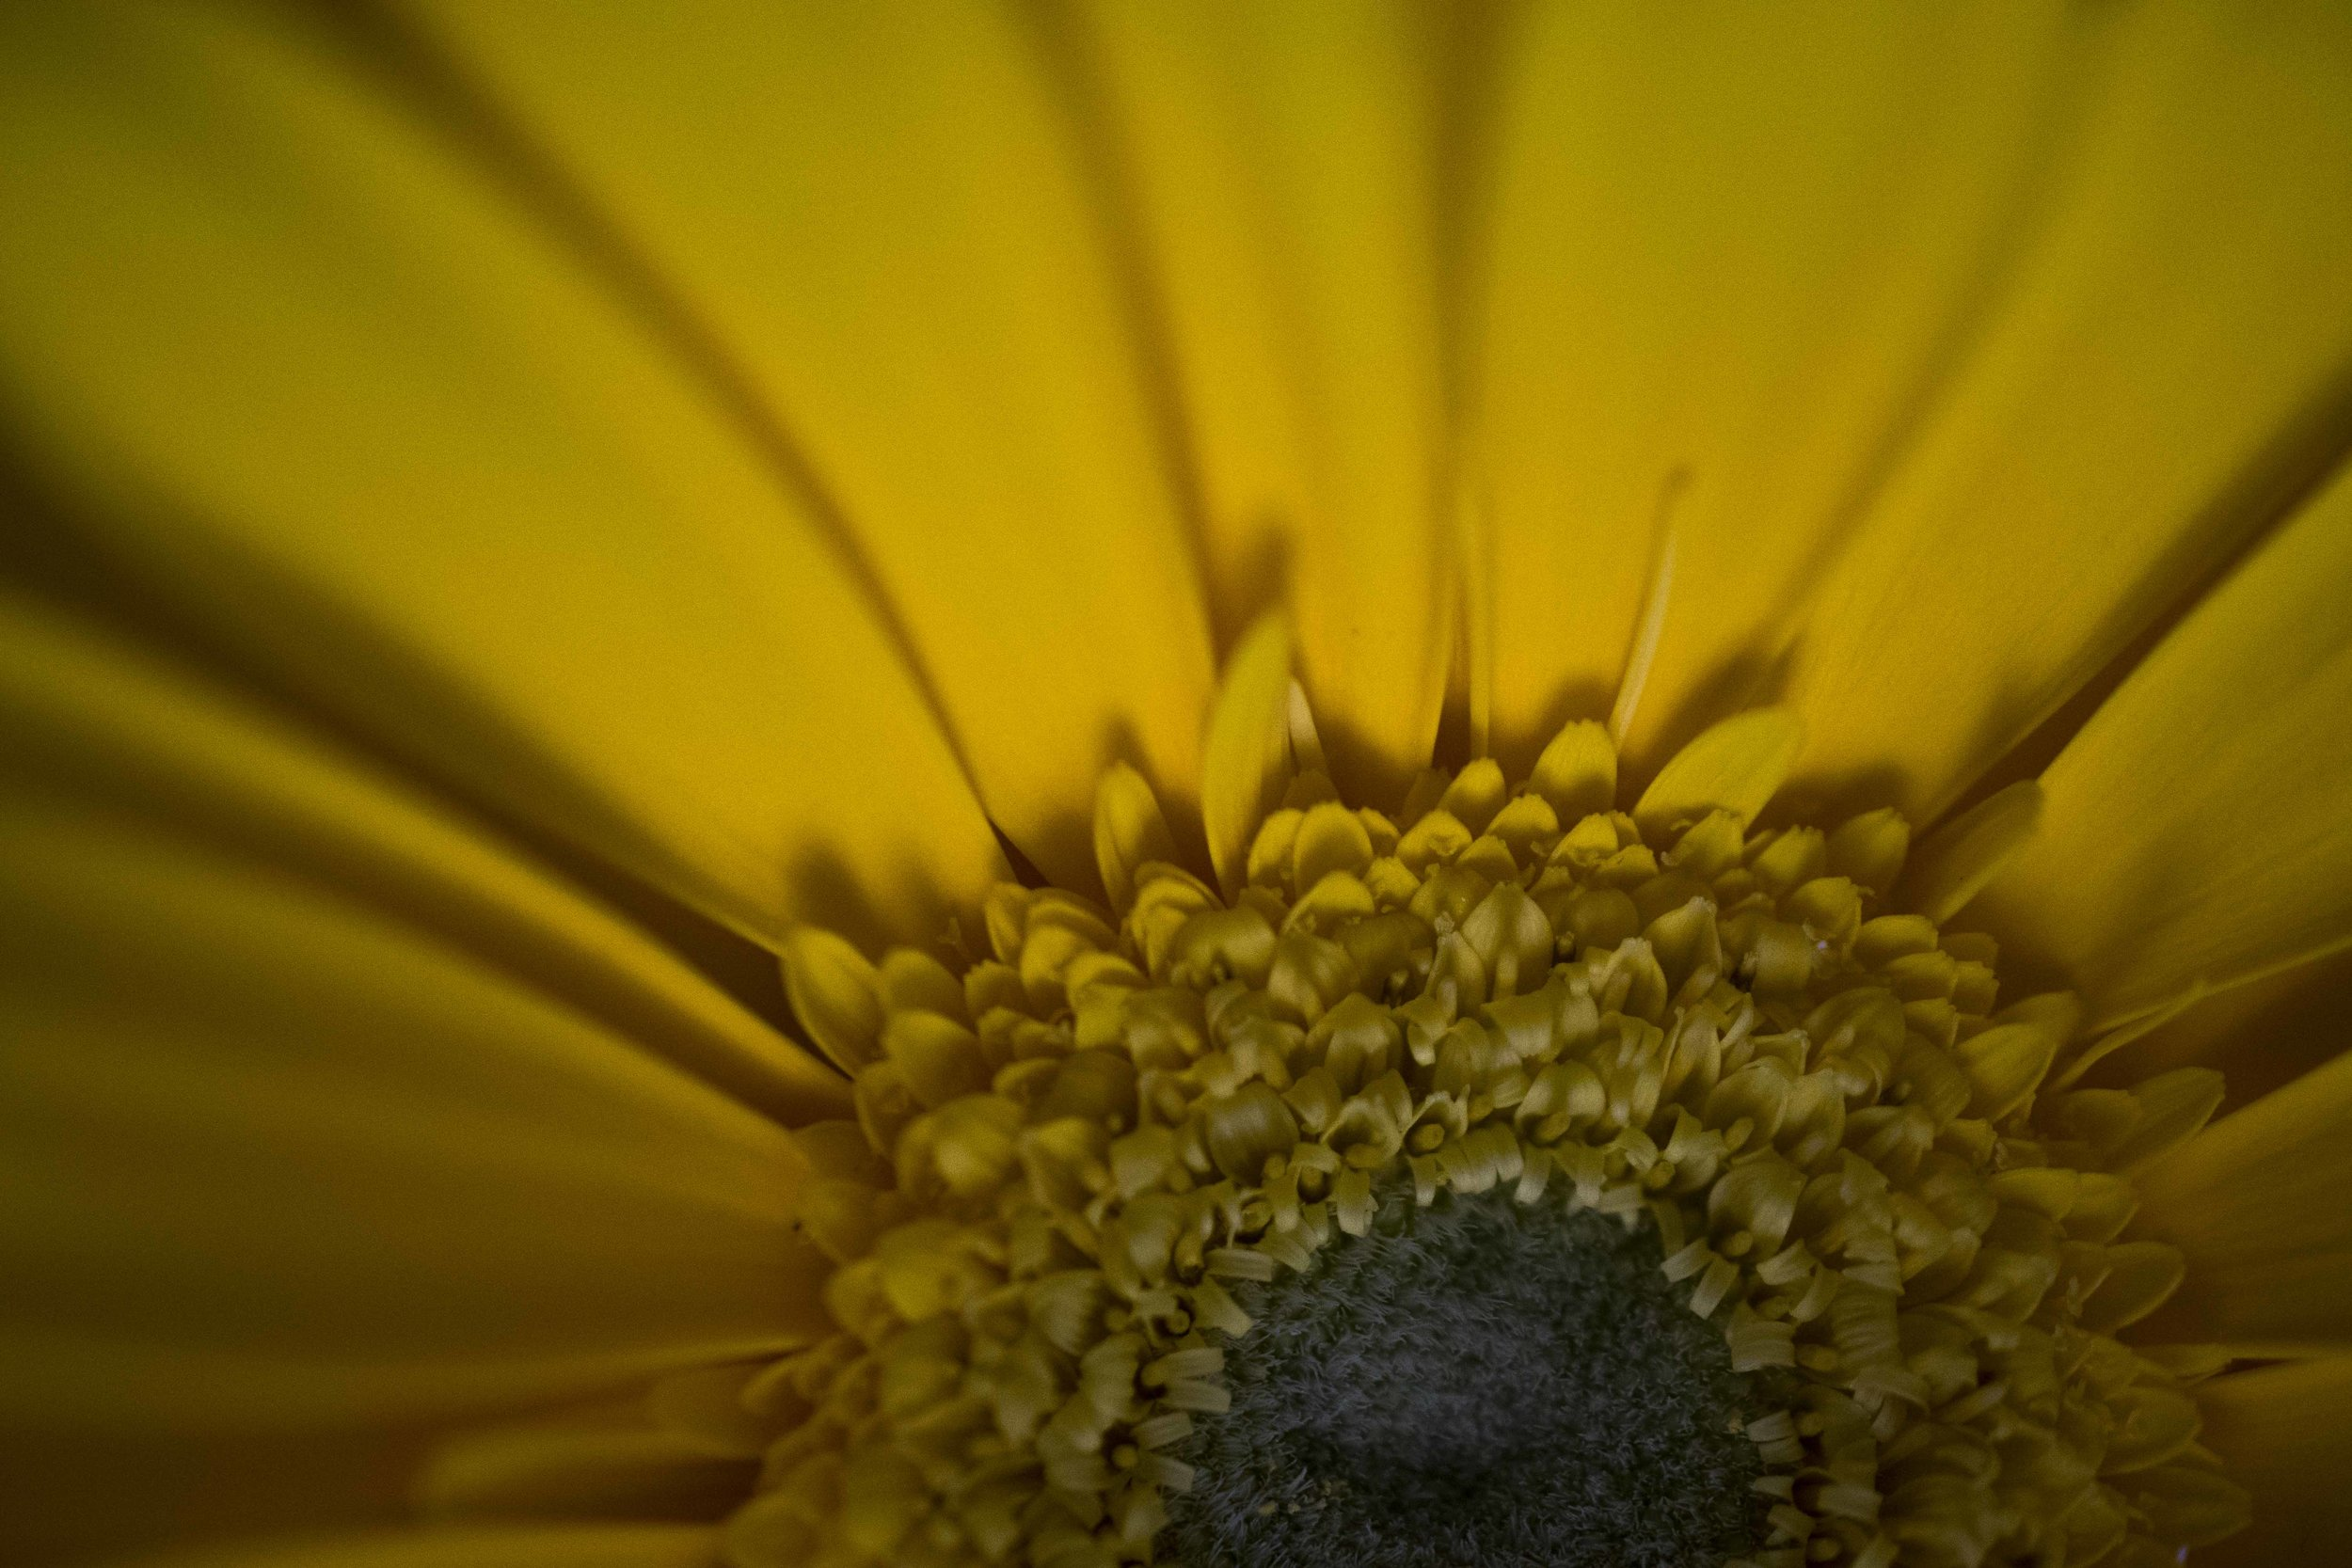 In honour of Mabel - In honour of Mabel, in Audreys faith story, we have a photo of her favourite flower.